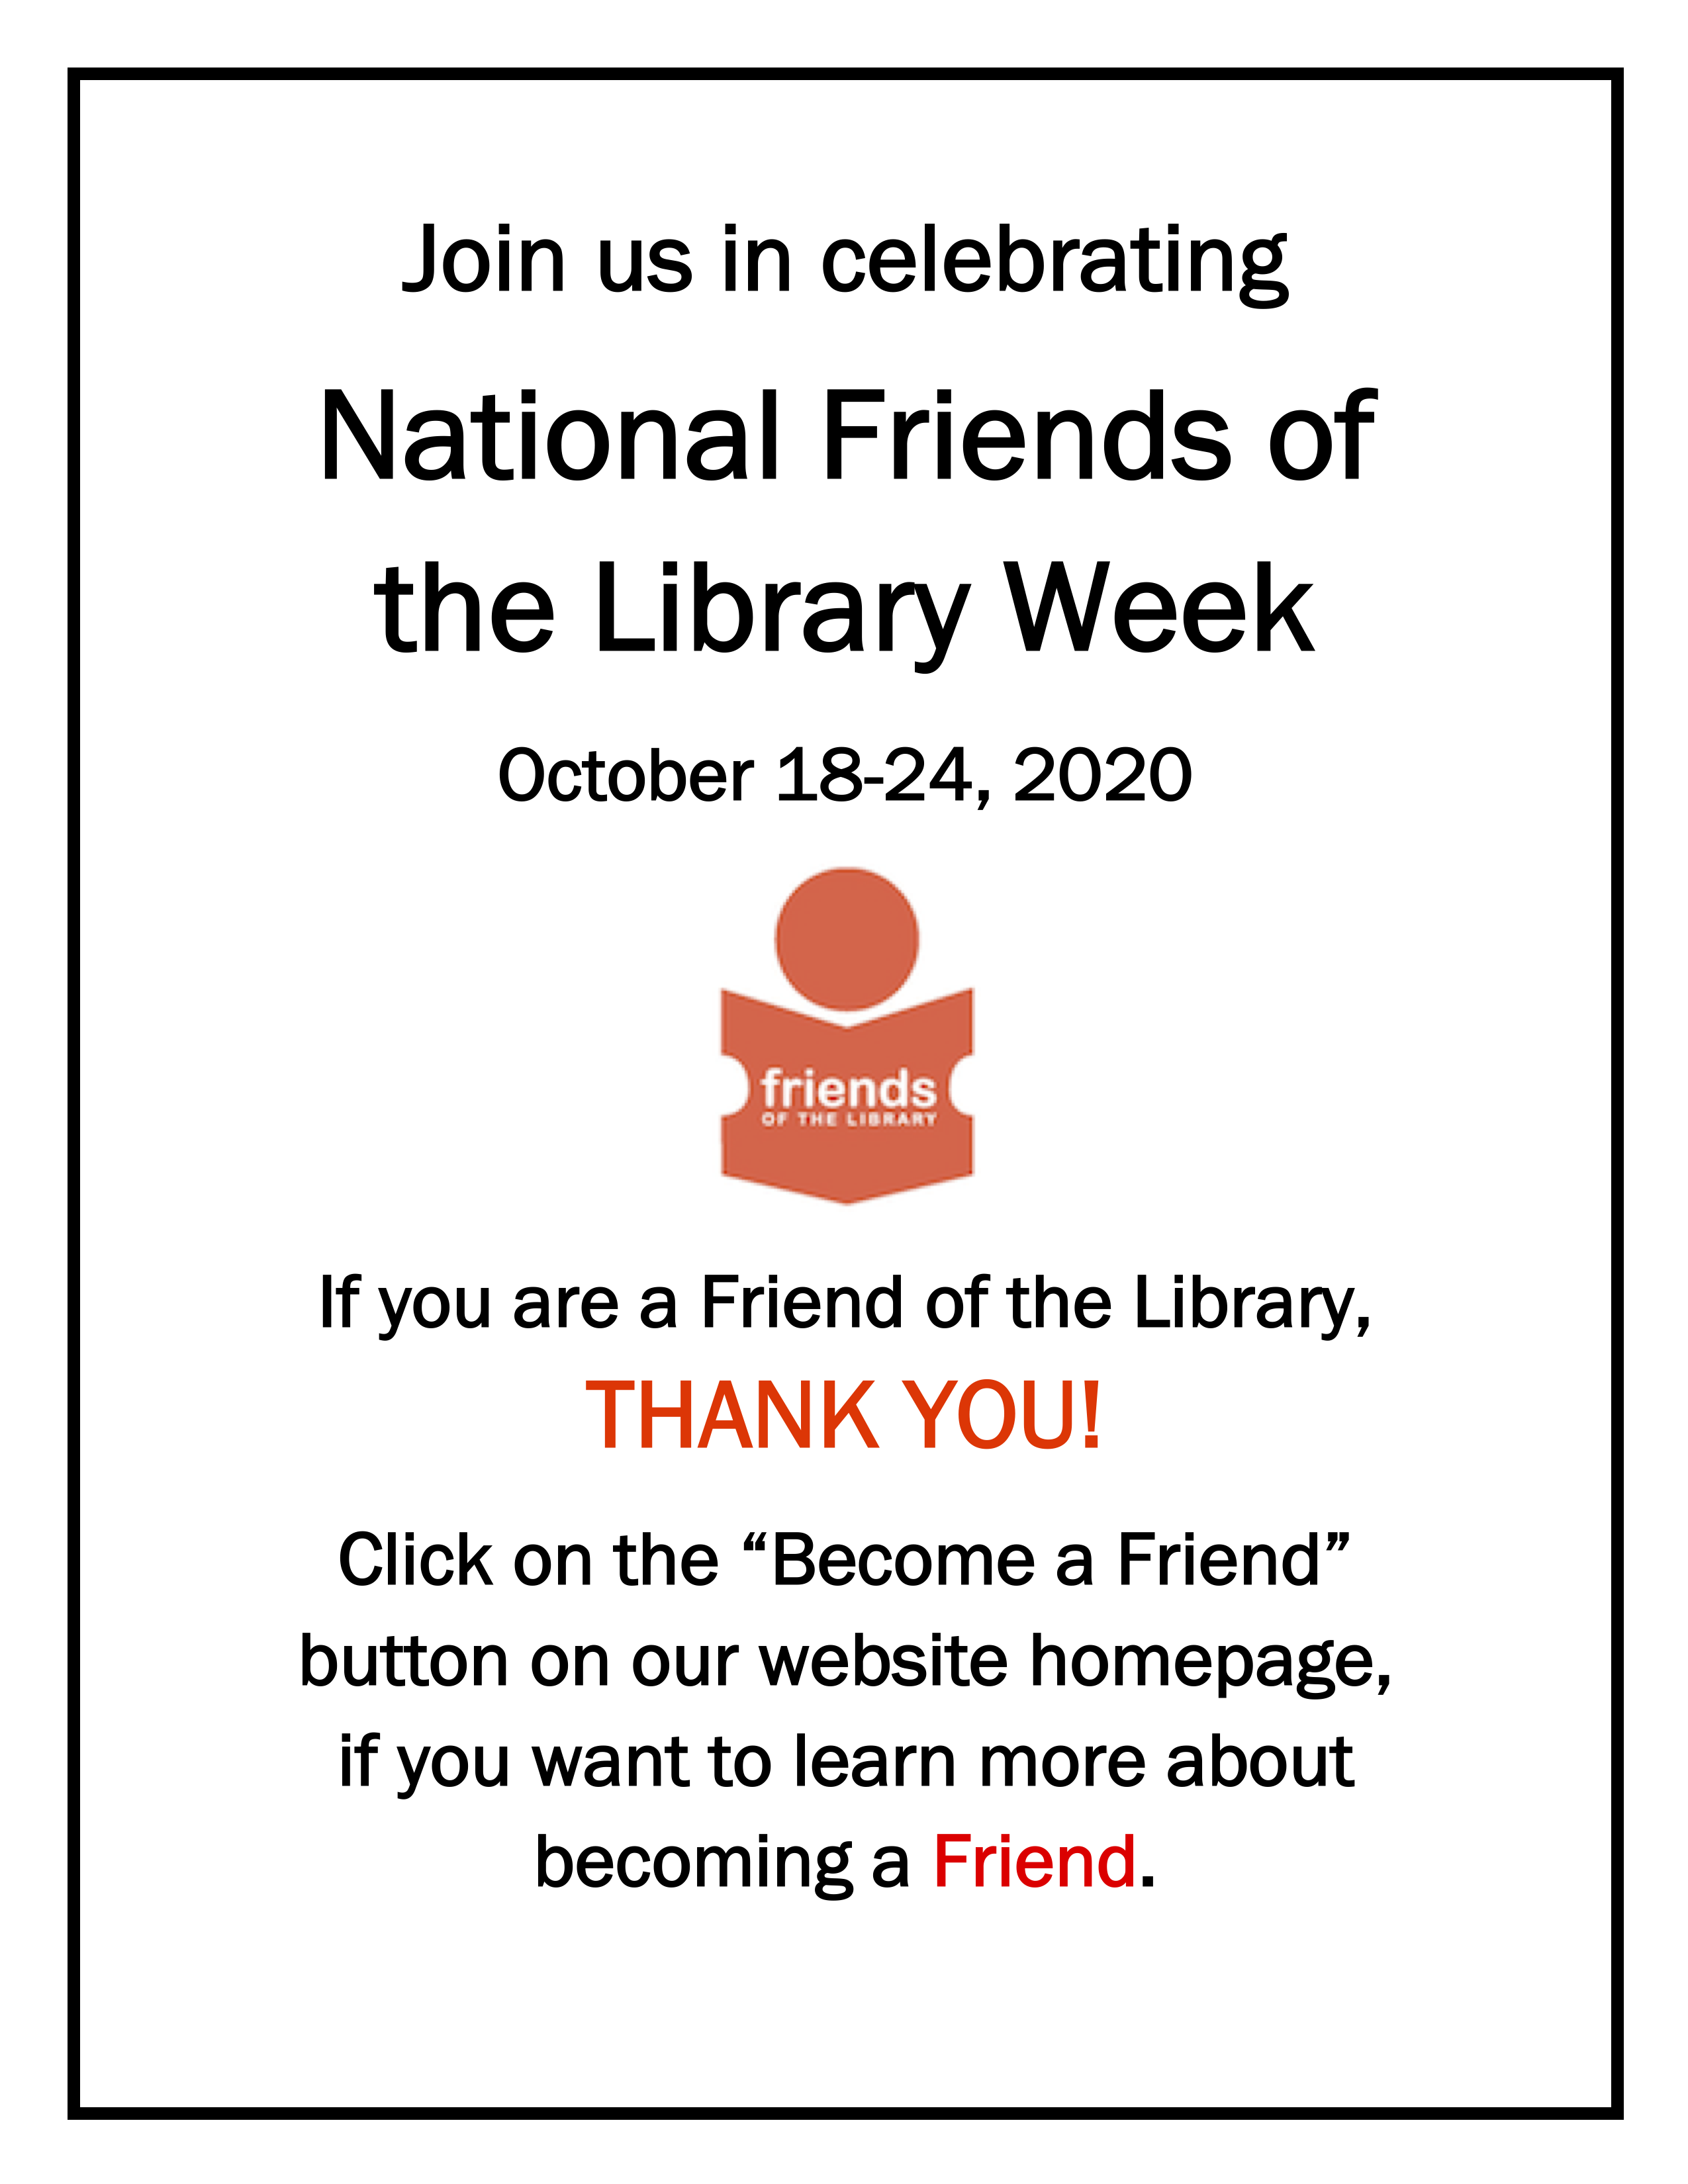 National Friends of the Library Week October 18,24, 2020